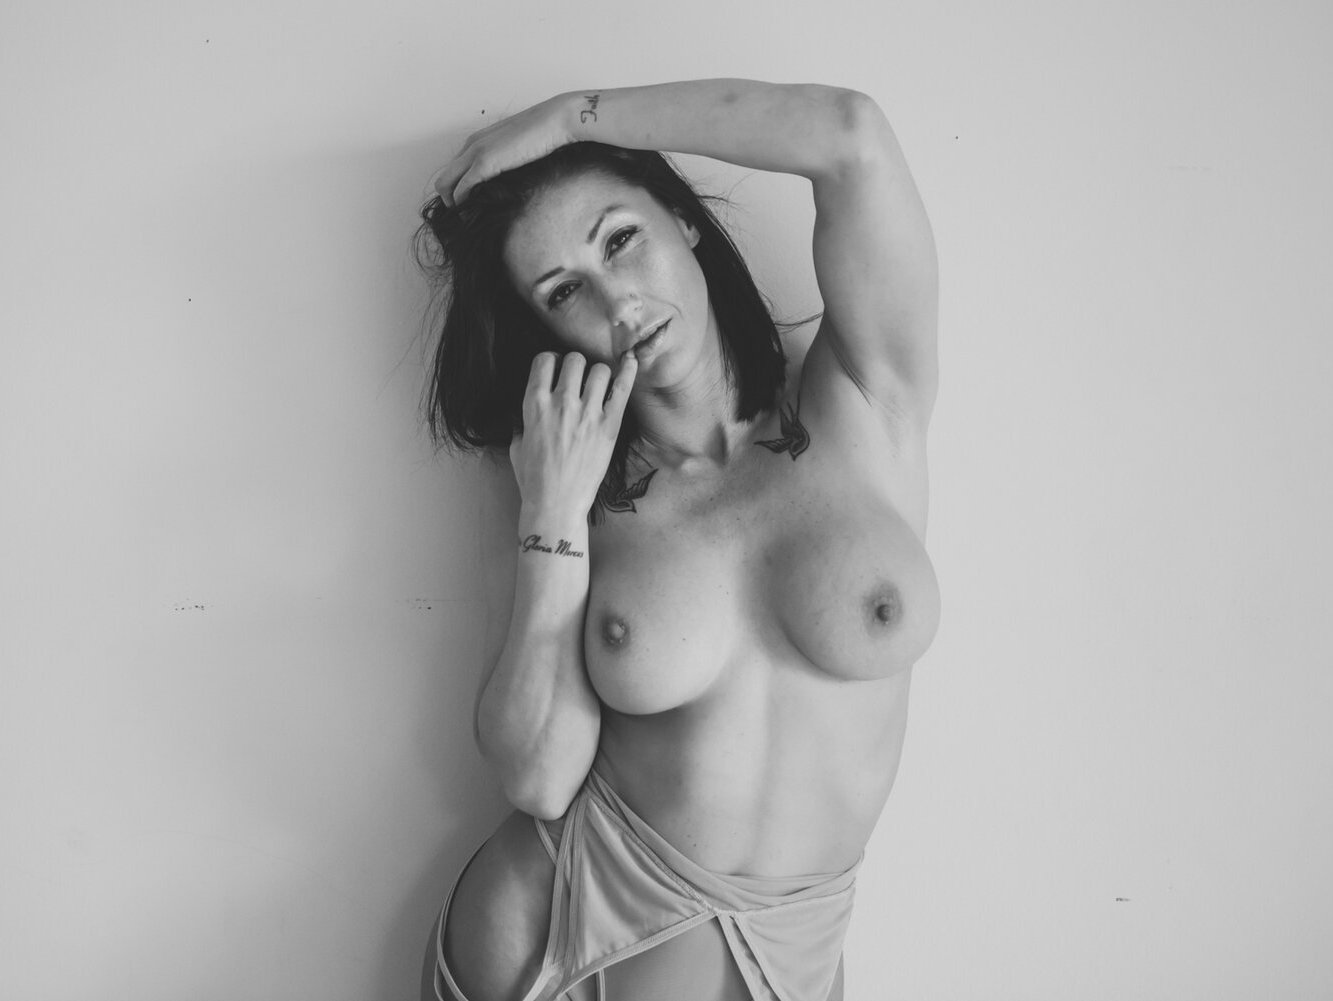 Busty woman nude photography in black and white